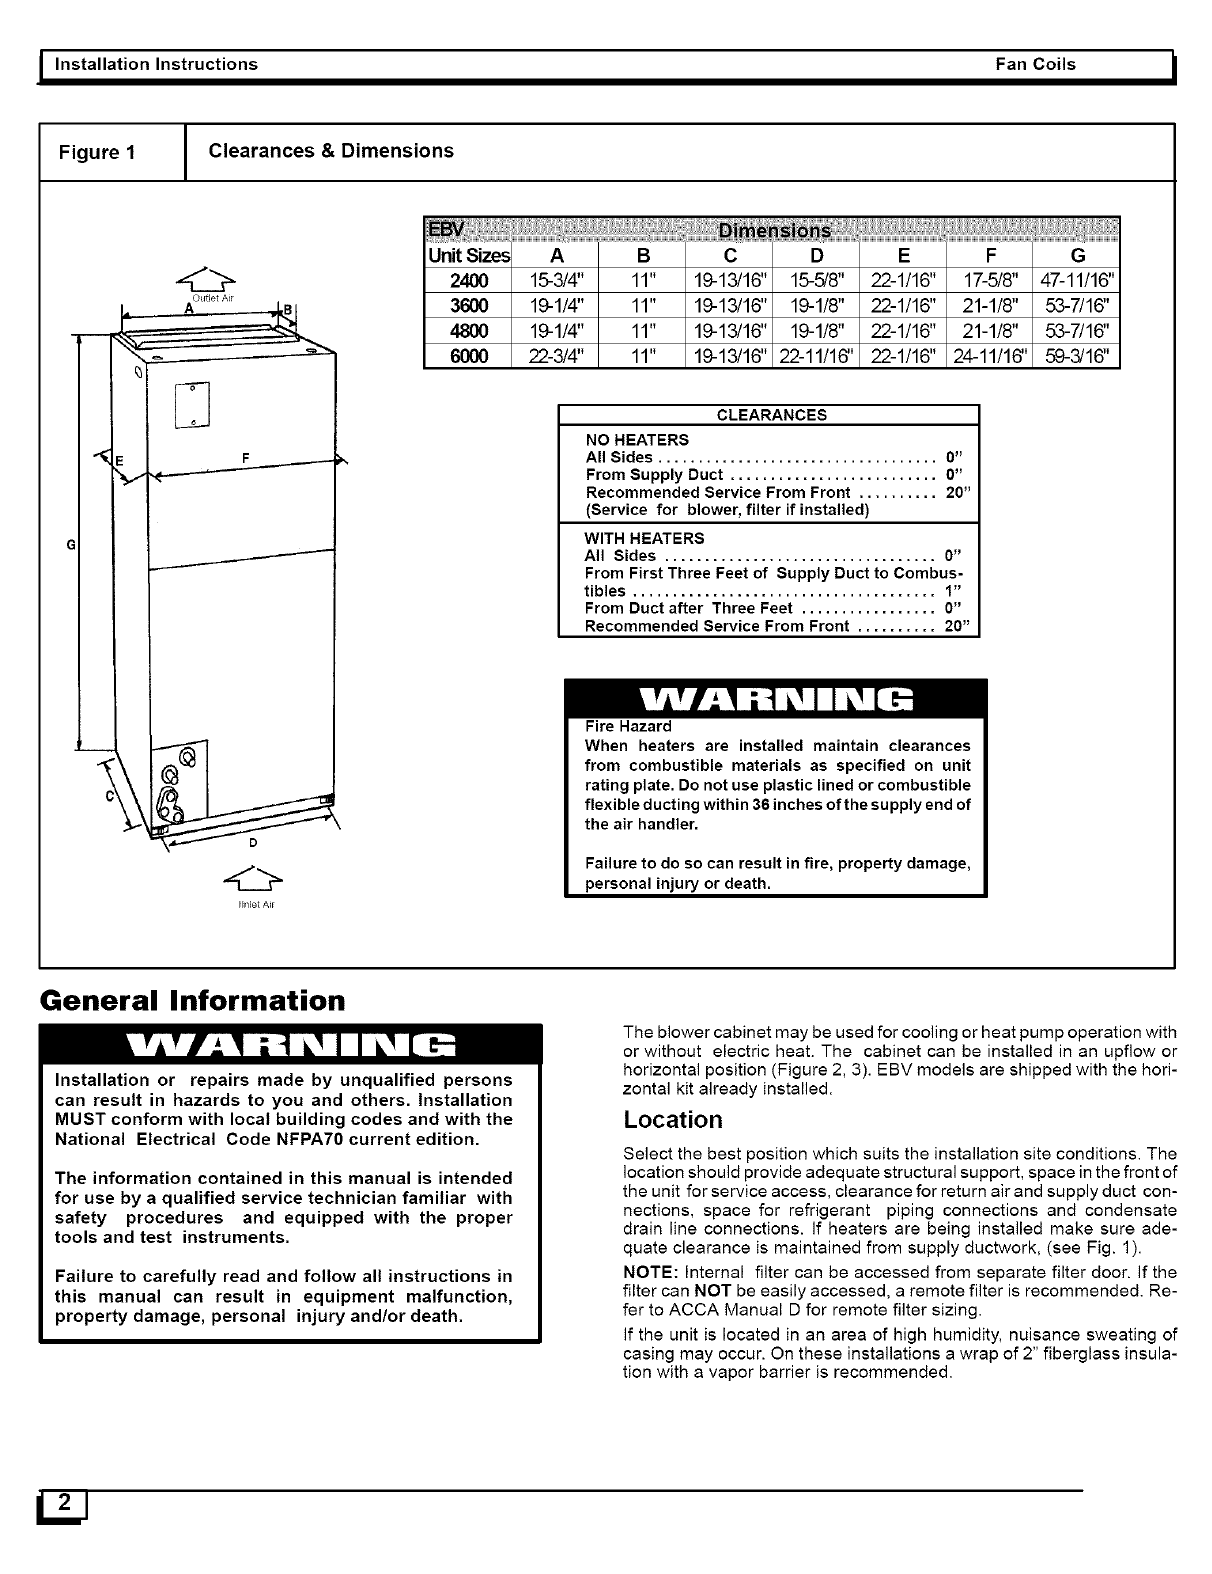 Wires To Coil Manual Guide